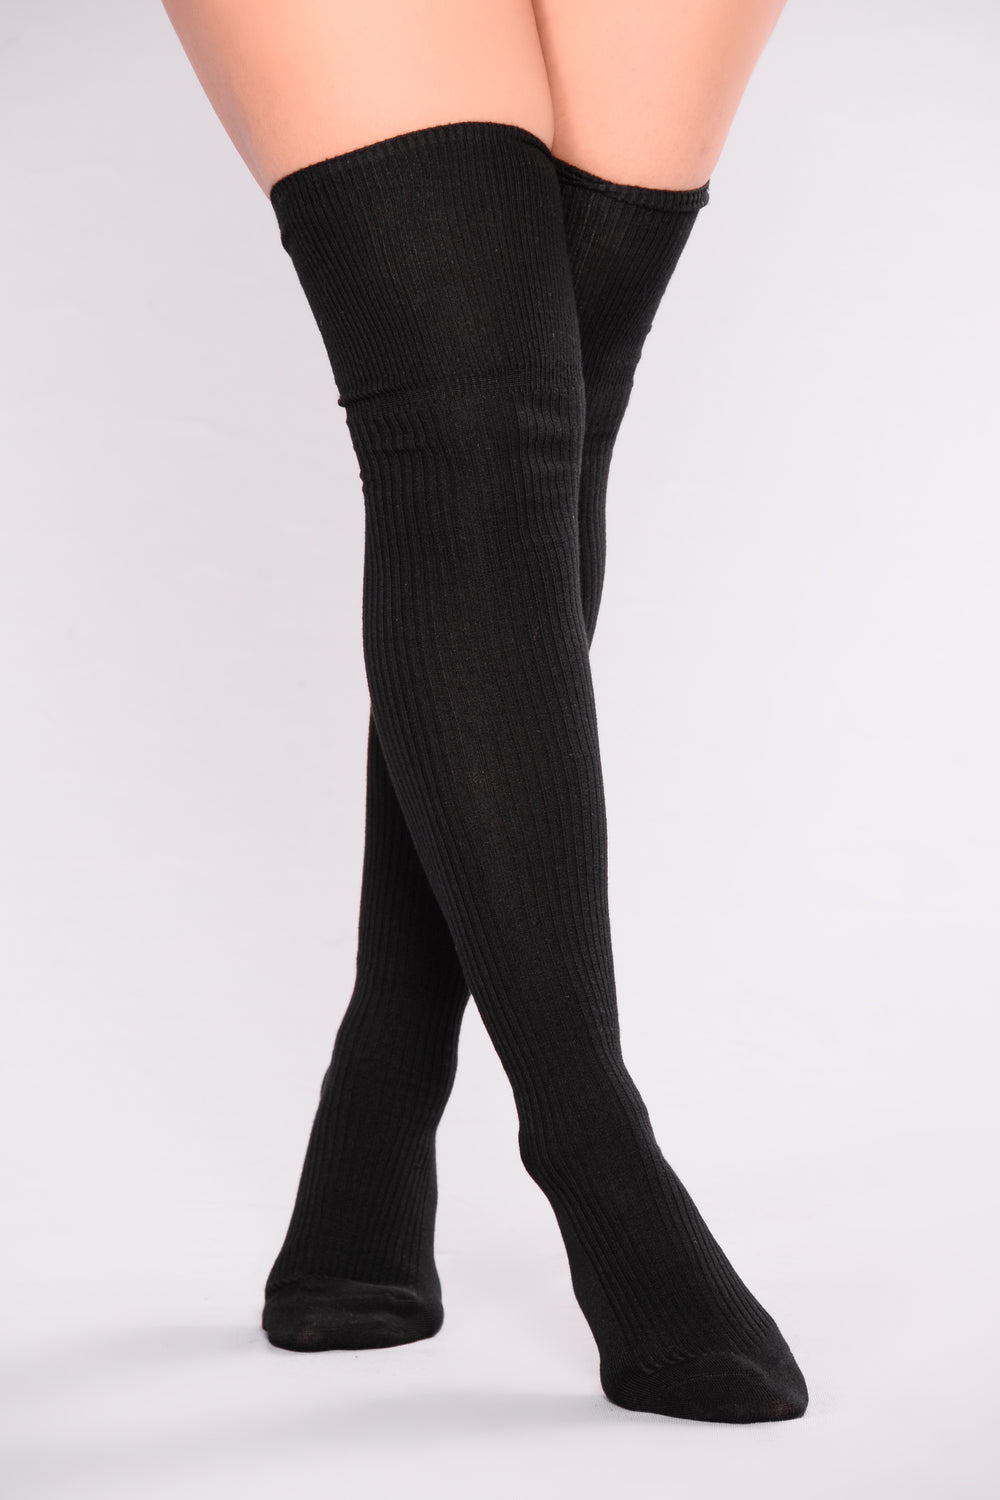 Available In Black Essential Over The Knee Sock Ribbed Fabrication Pair with Ankle Booties.